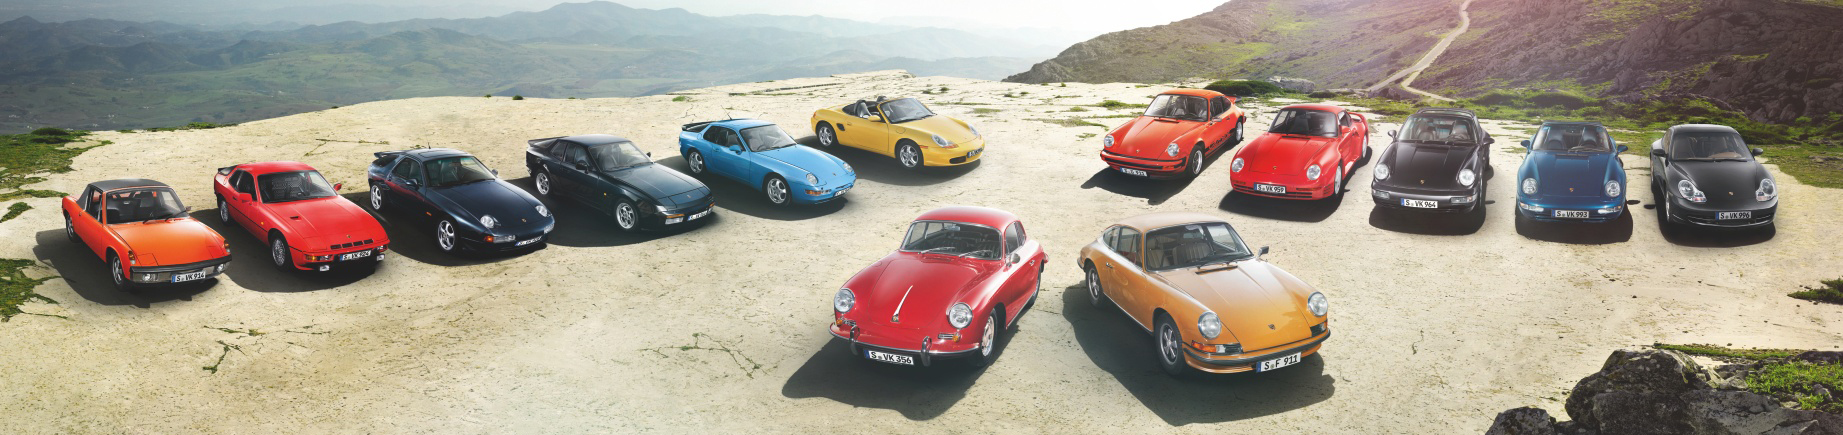 Porsche Values | Porsche Club of America